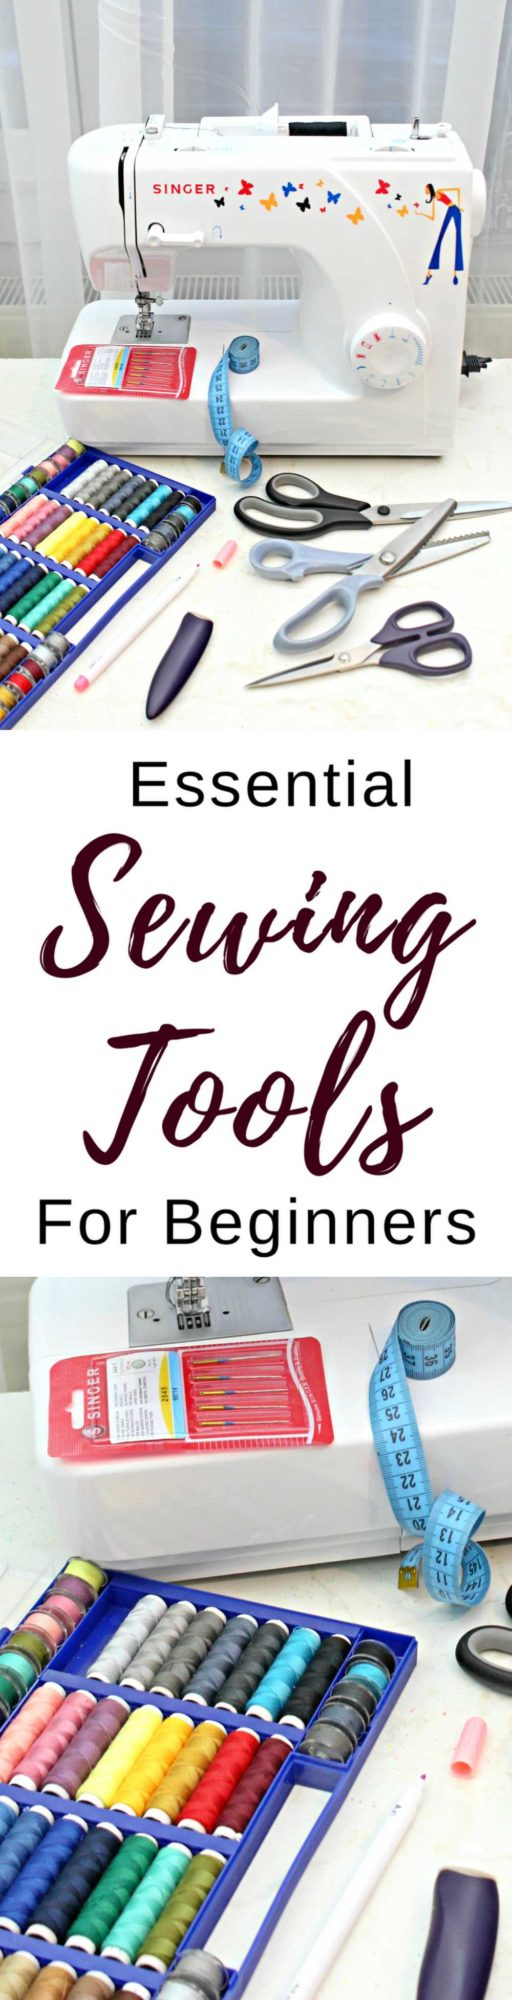 Sewing kits for beginners